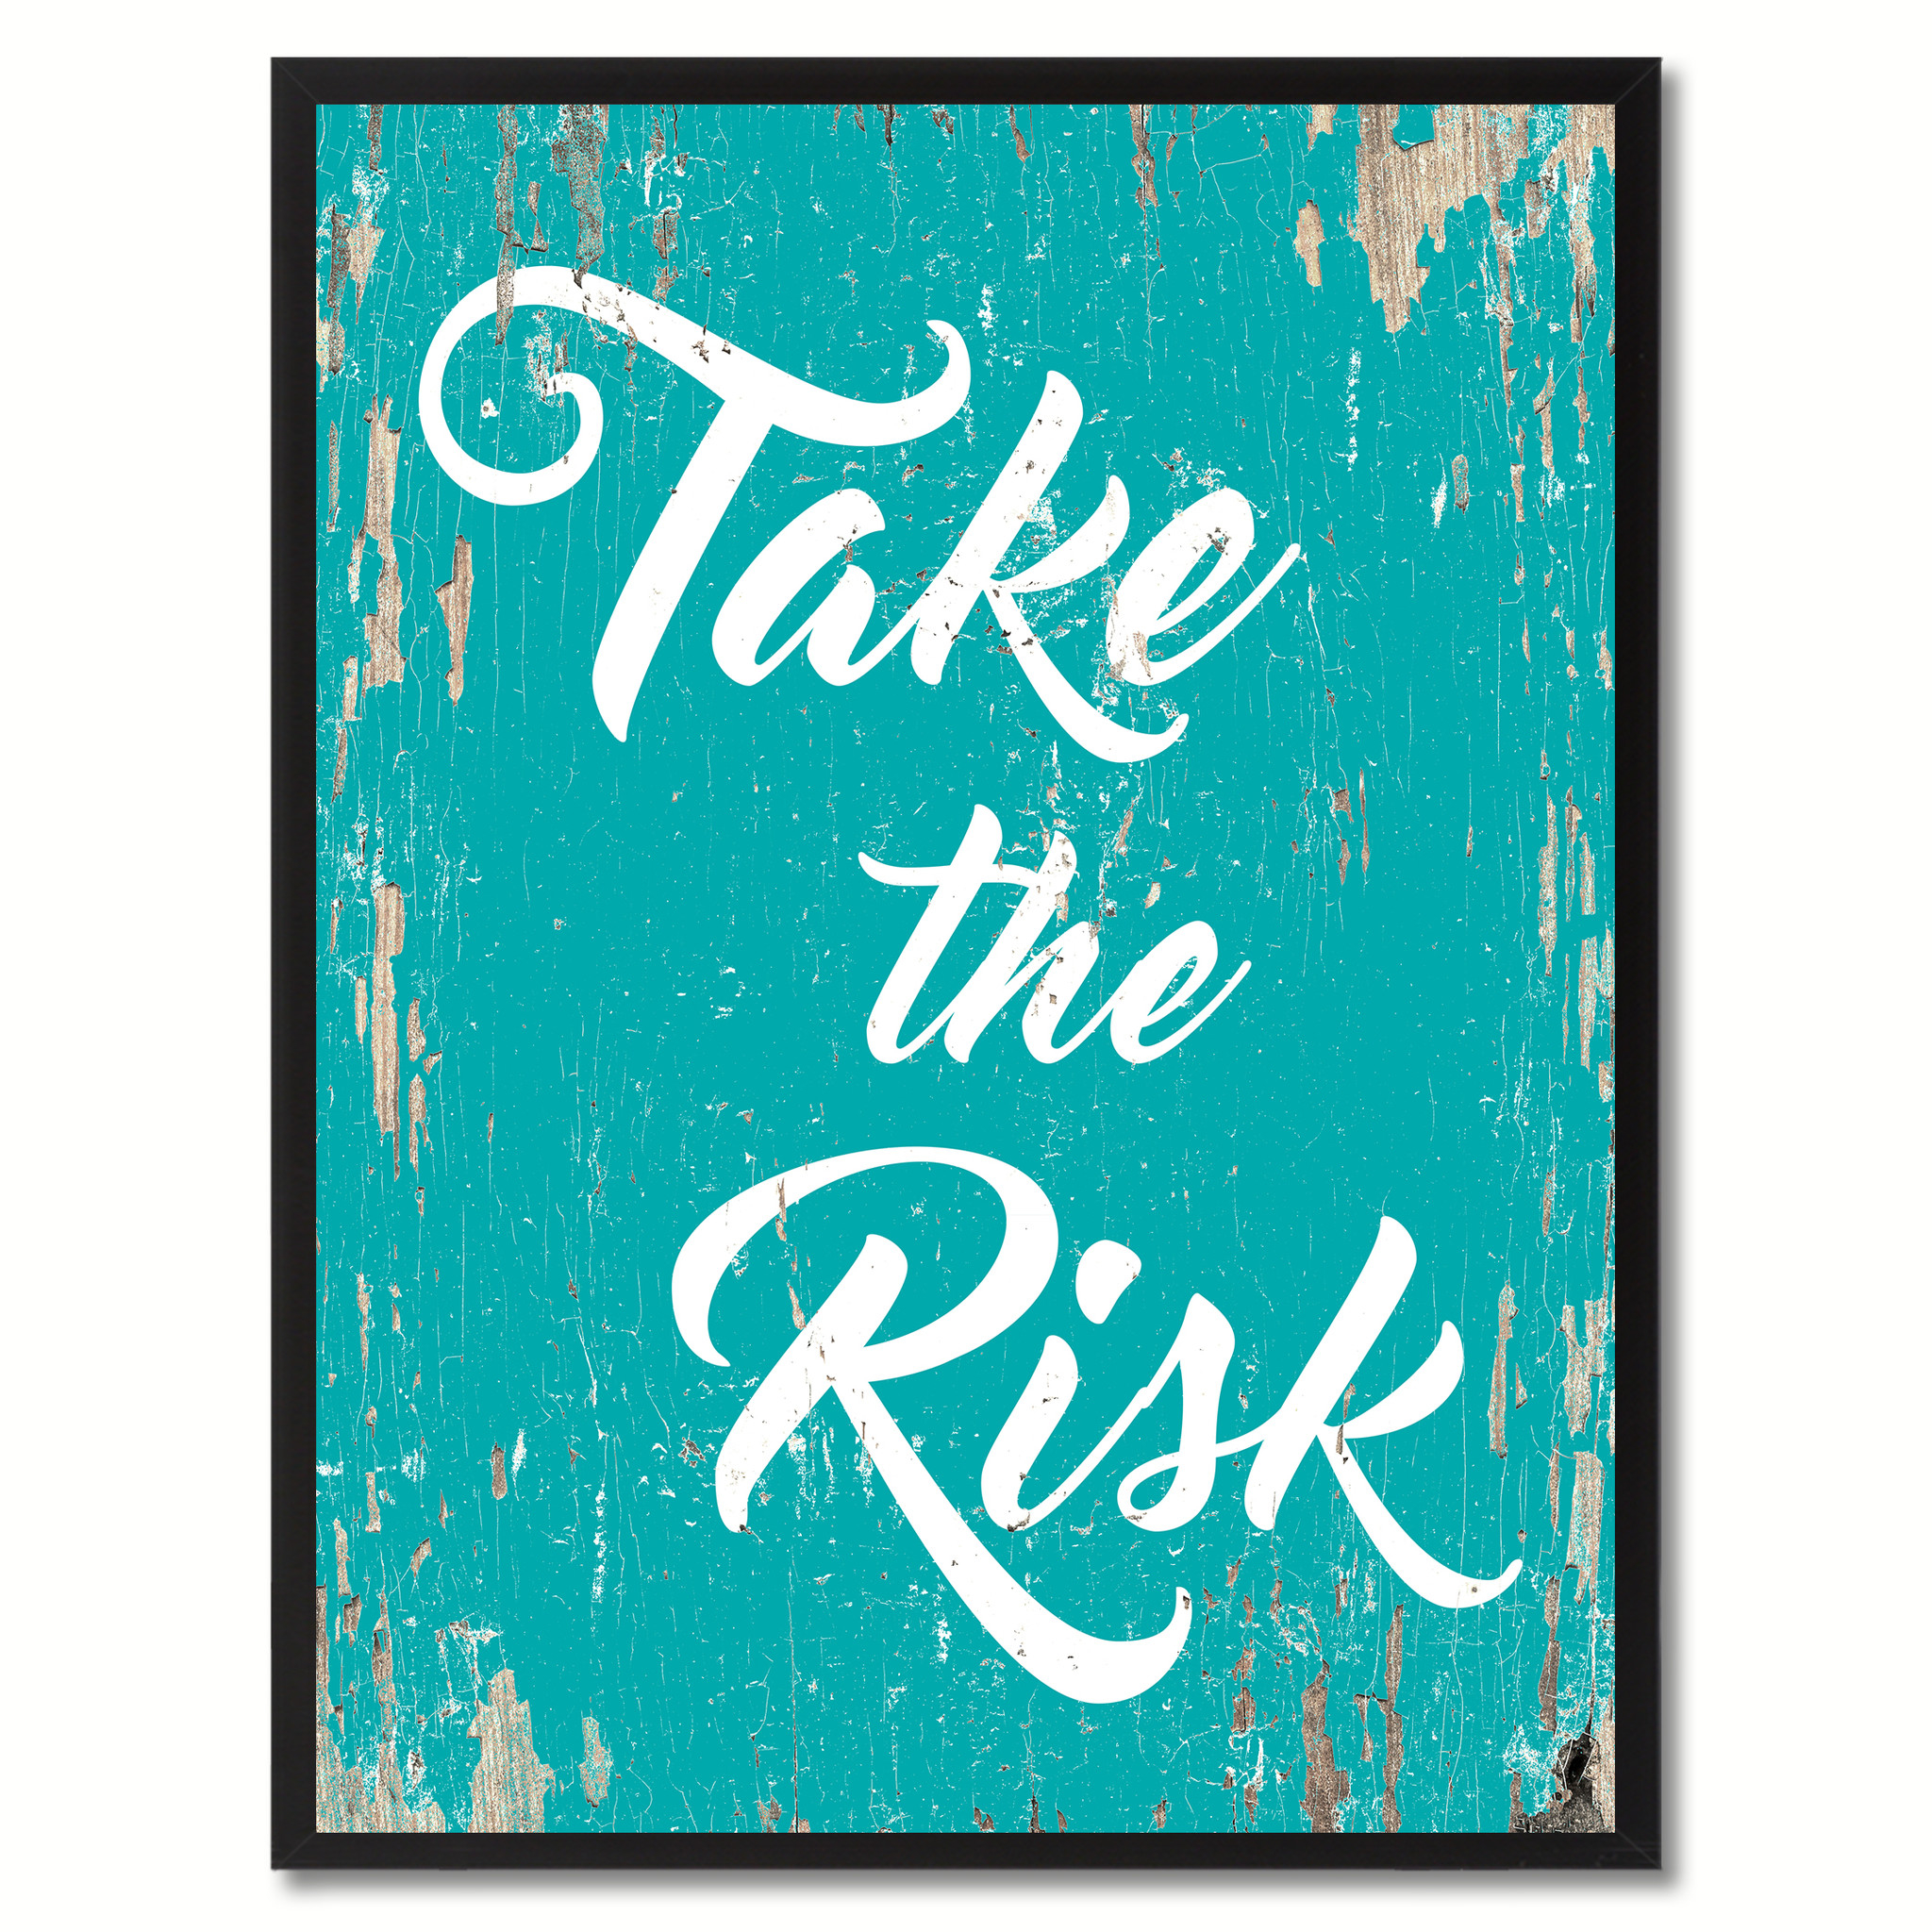 "Take The Risk Saying Canvas Print, Black Picture Frame Home Decor Wall Art Gifts - 7""x9\"""